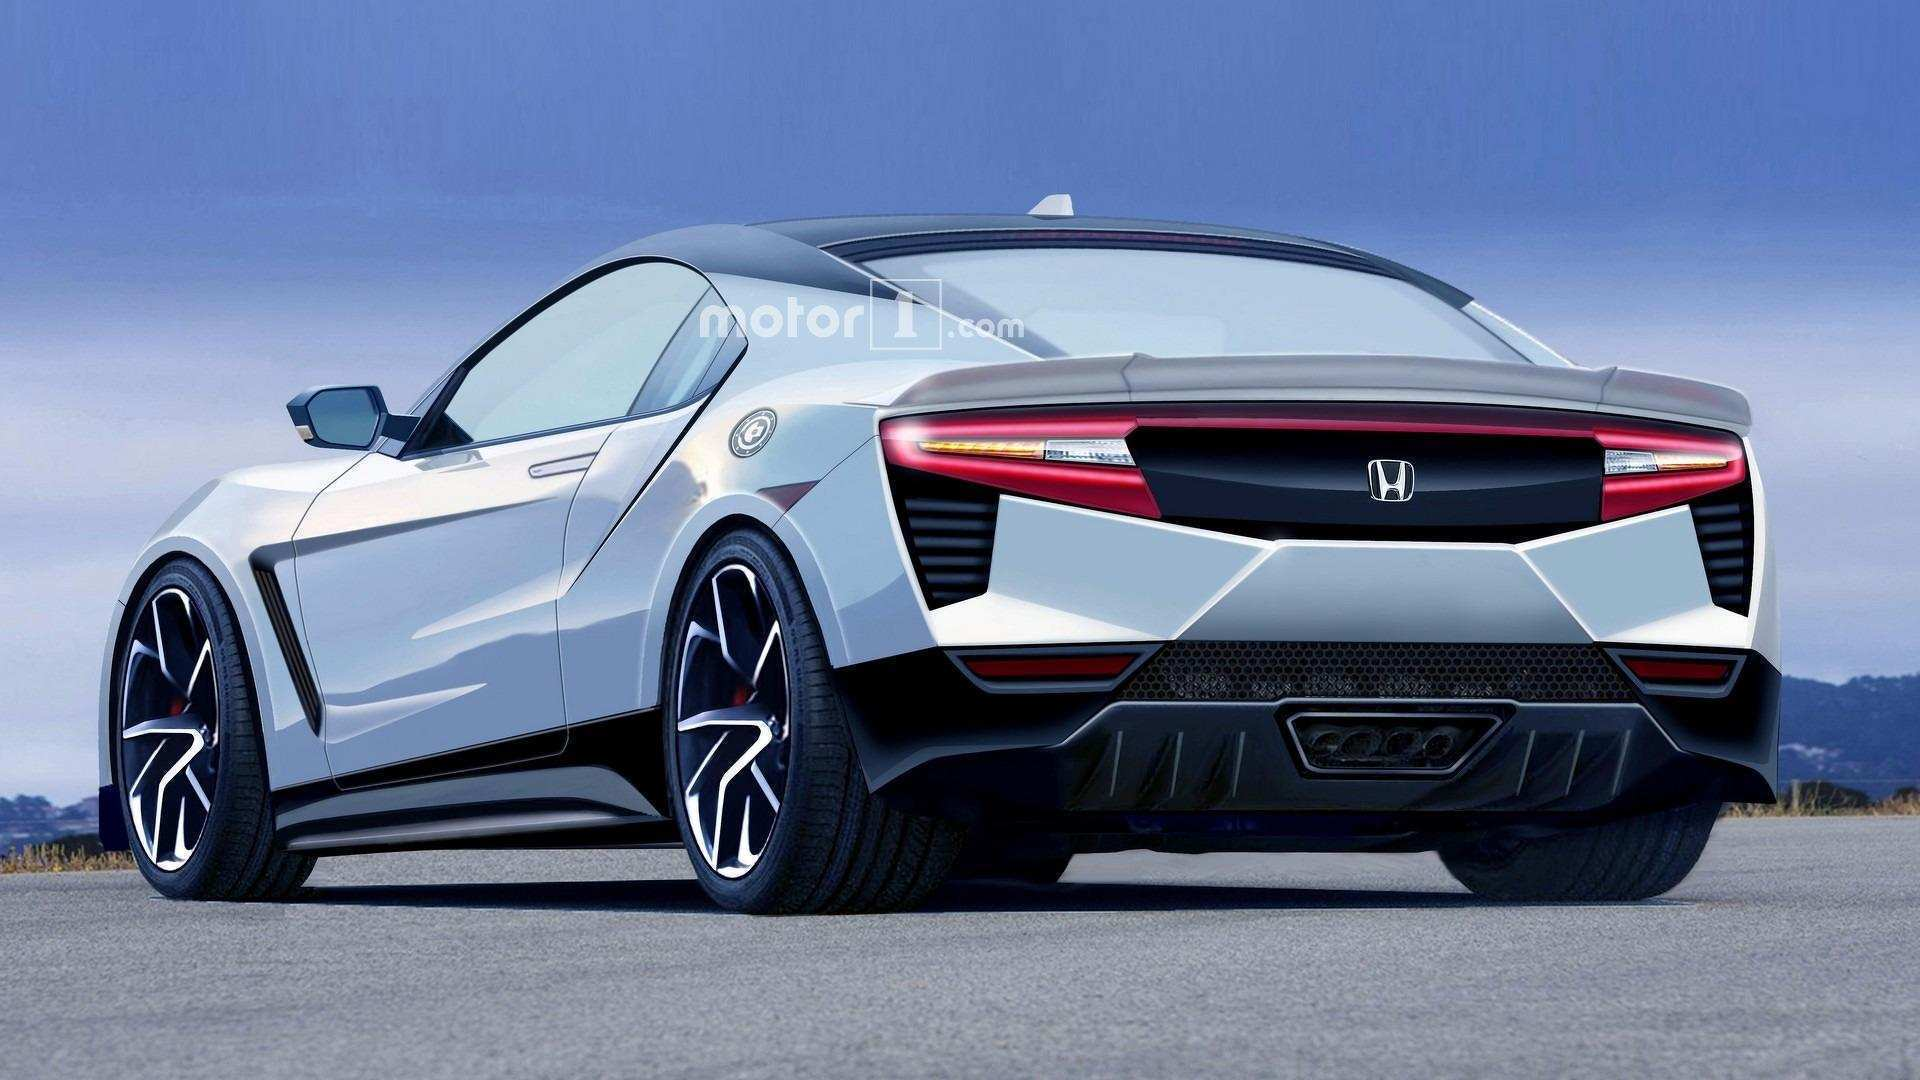 44 All New 2019 Honda S2000 Review And Release Date